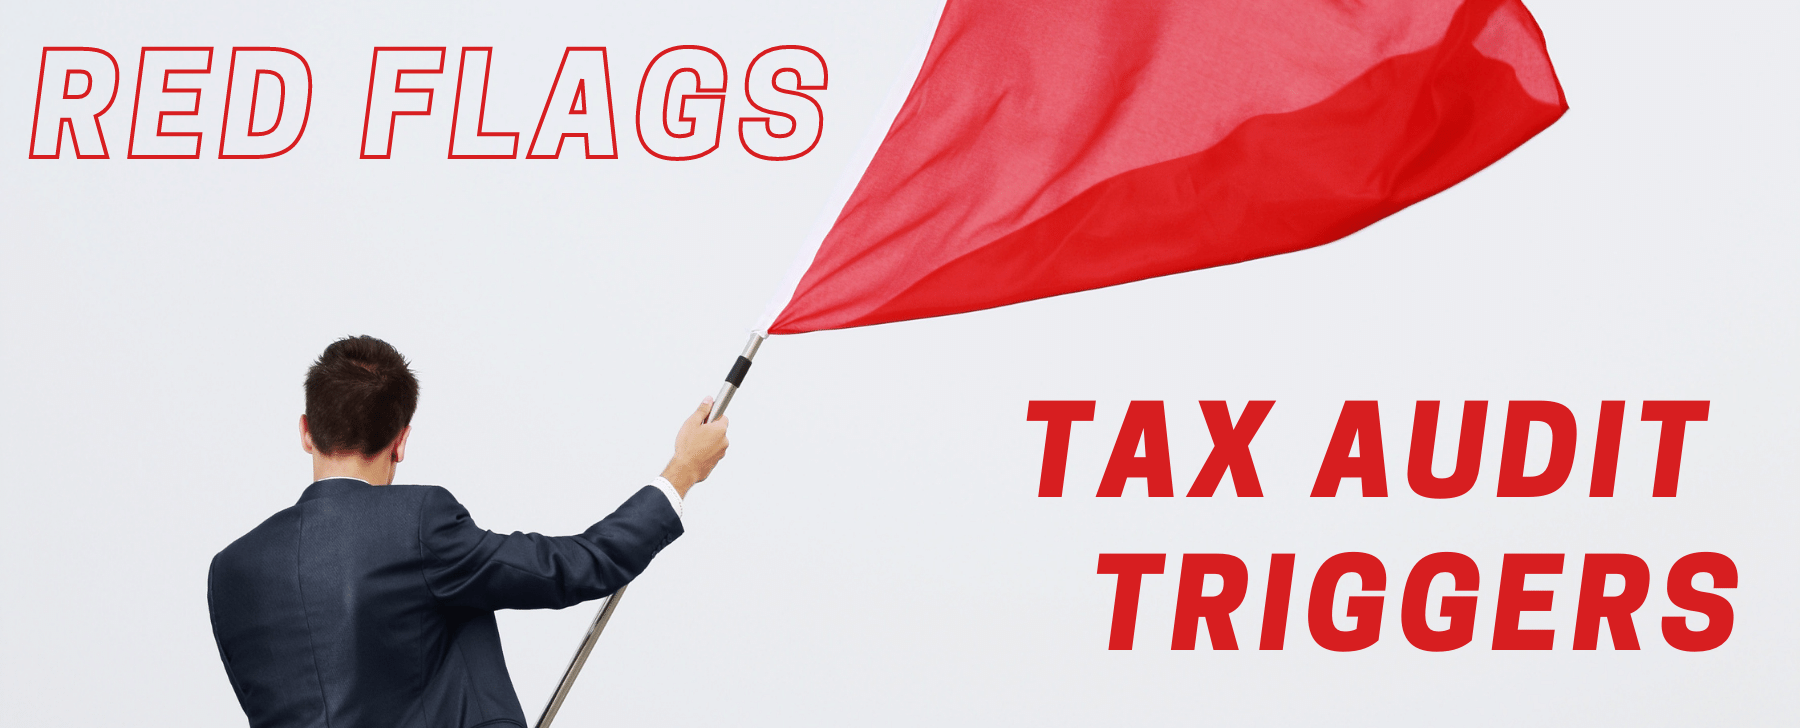 small business tax audit triggers red flags in business tax